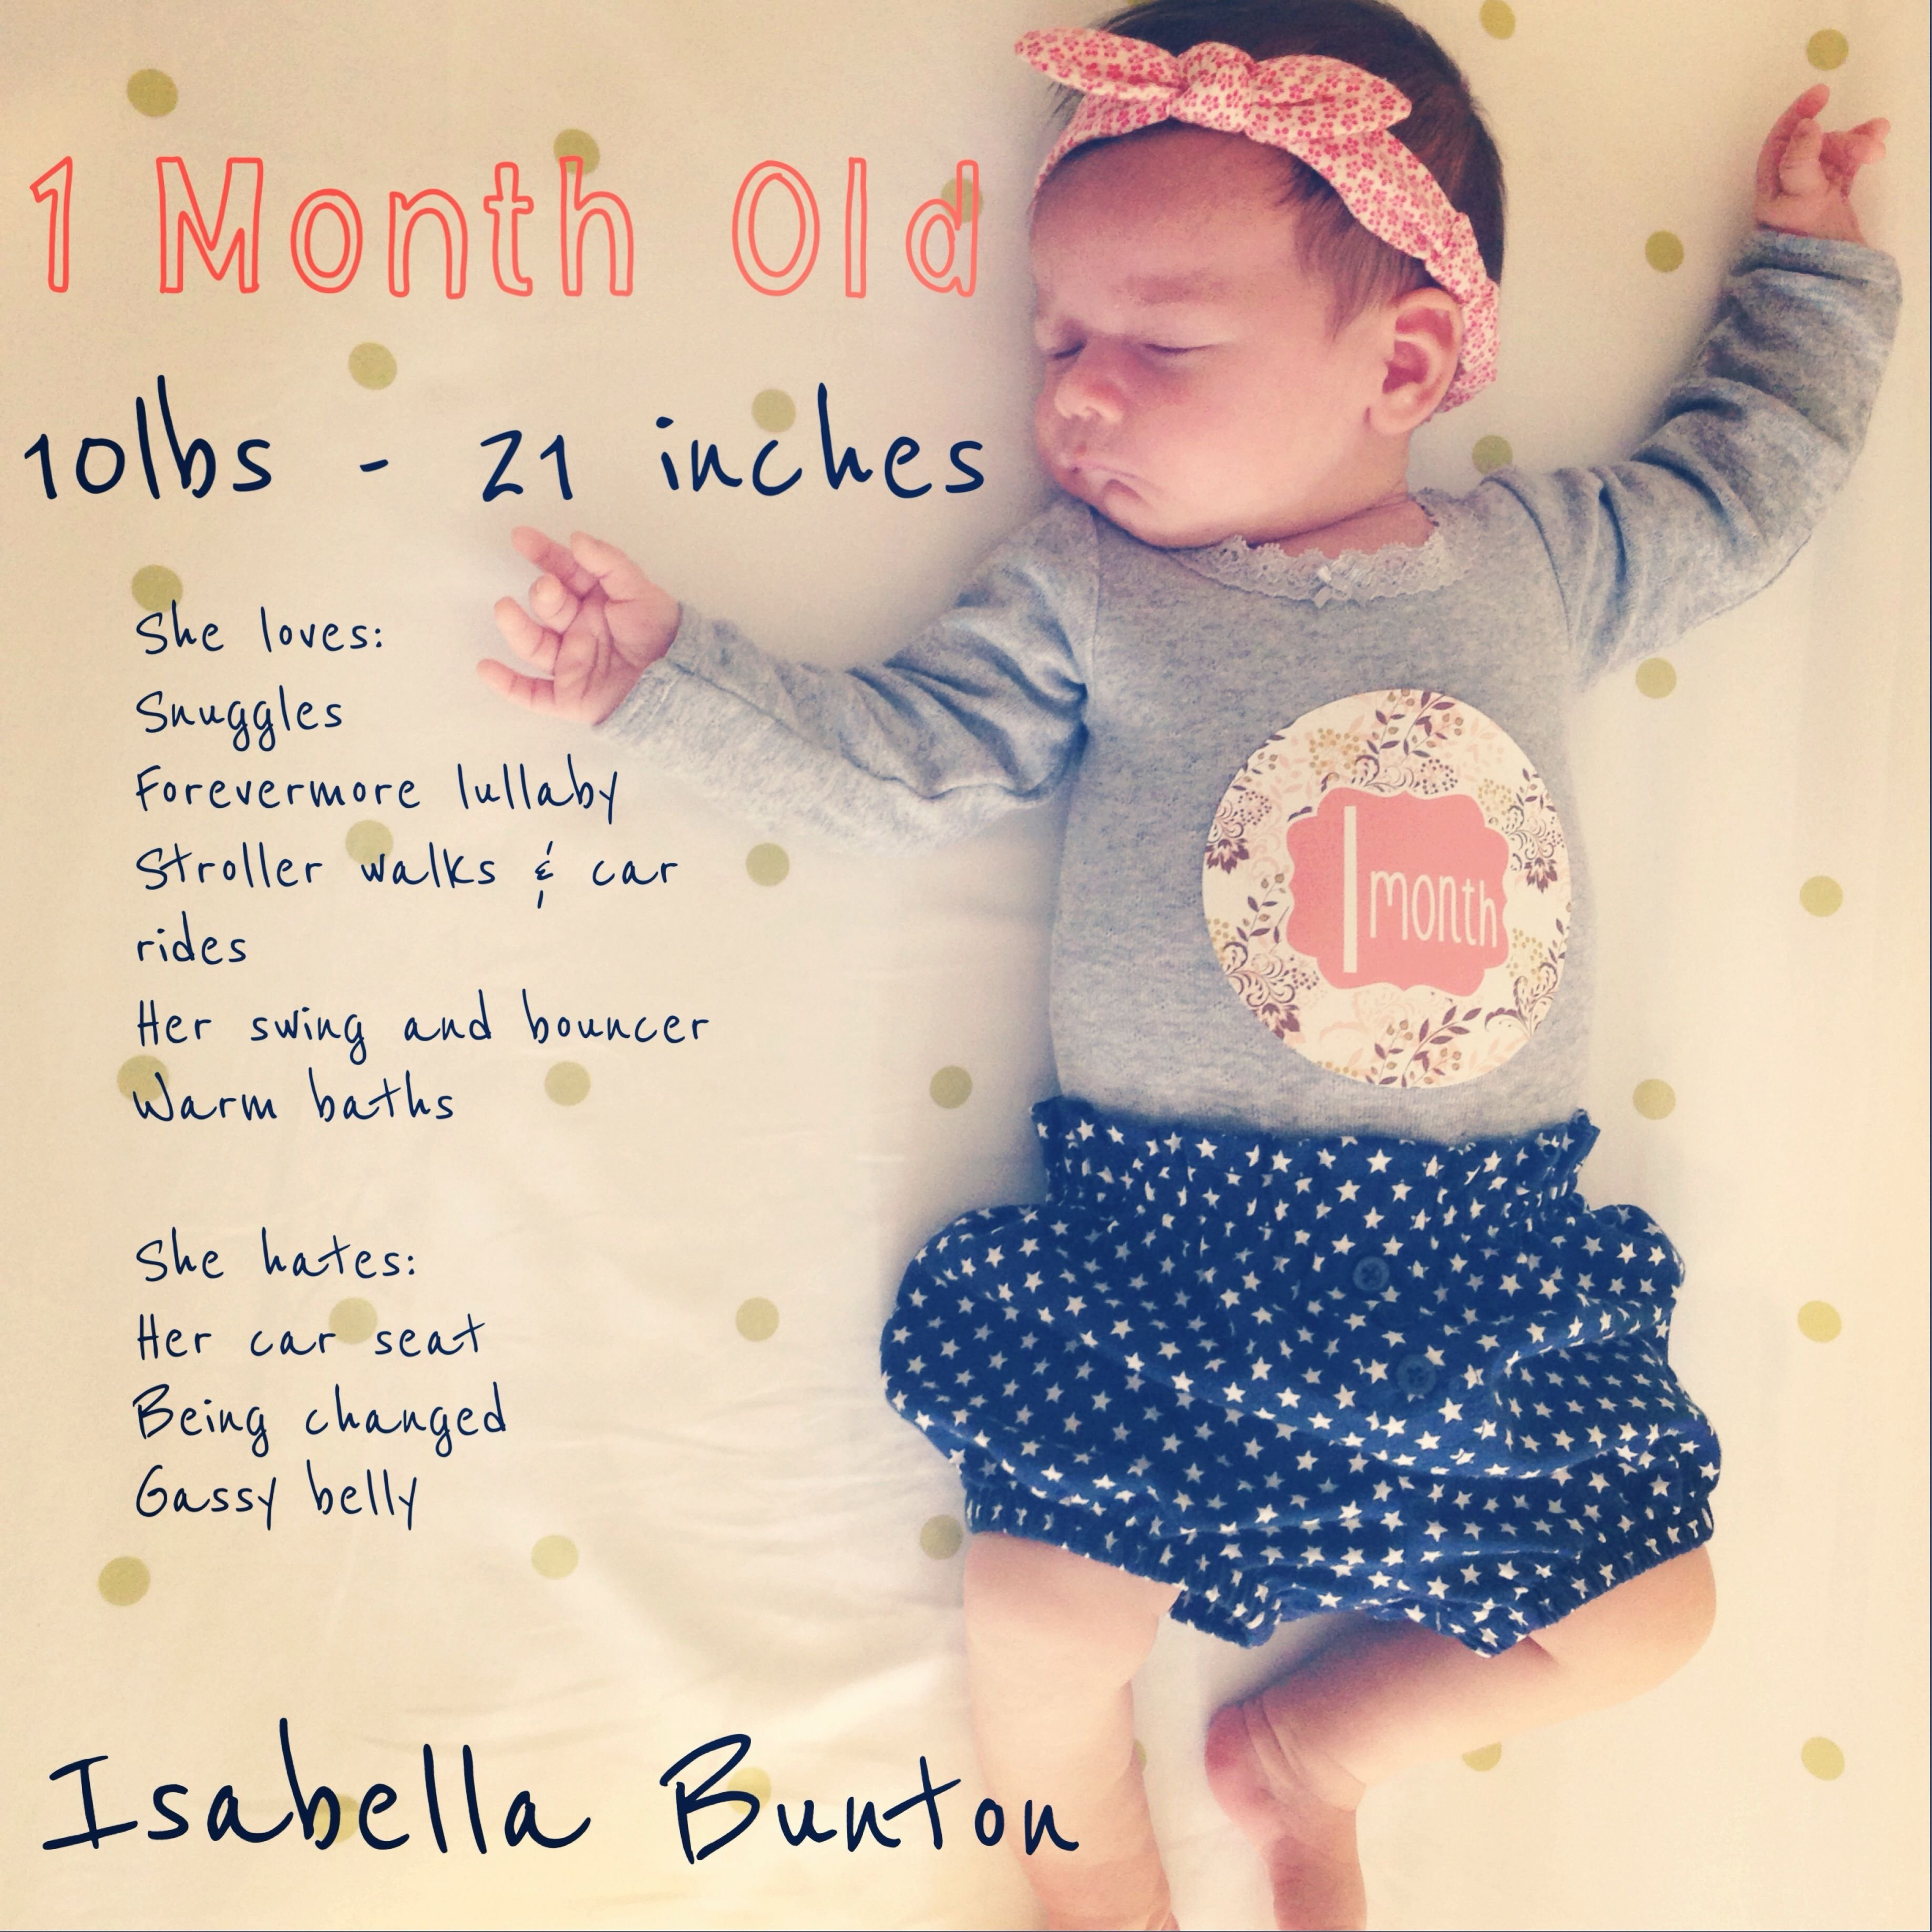 10 Great One Month Old Baby Picture Ideas 1 month old picture baby picture ideas pinterest babies baby 2020